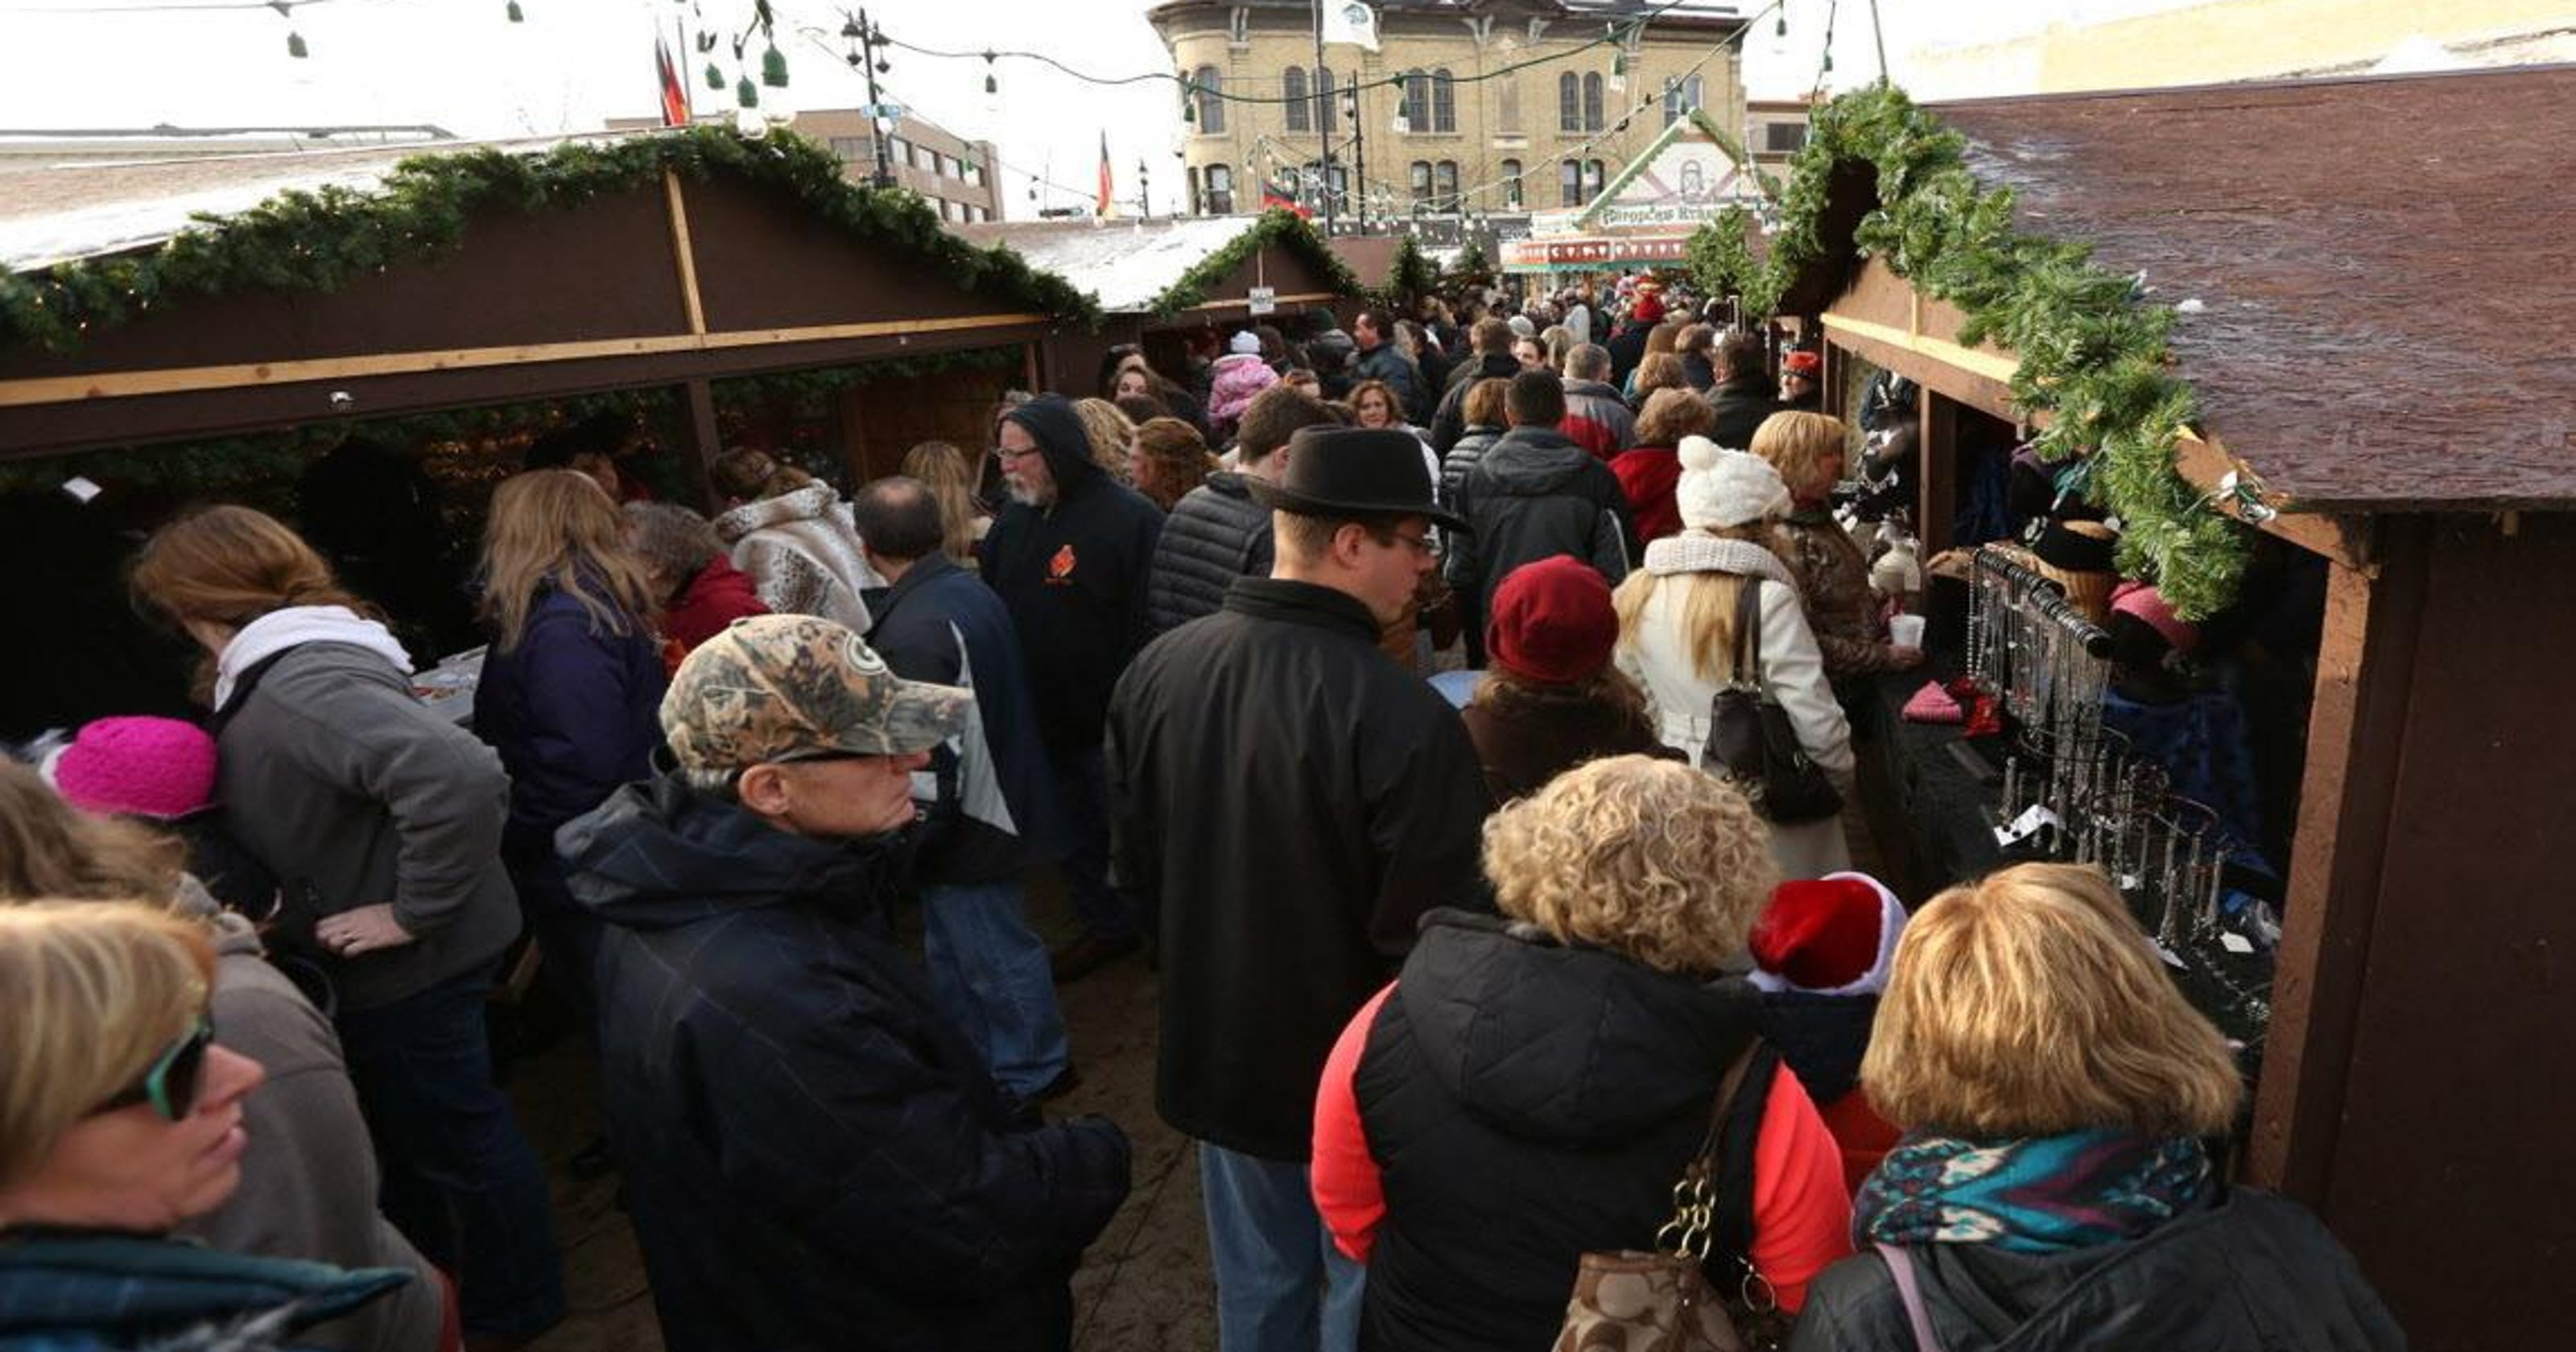 Old World Christmas markets a nod to German heritage